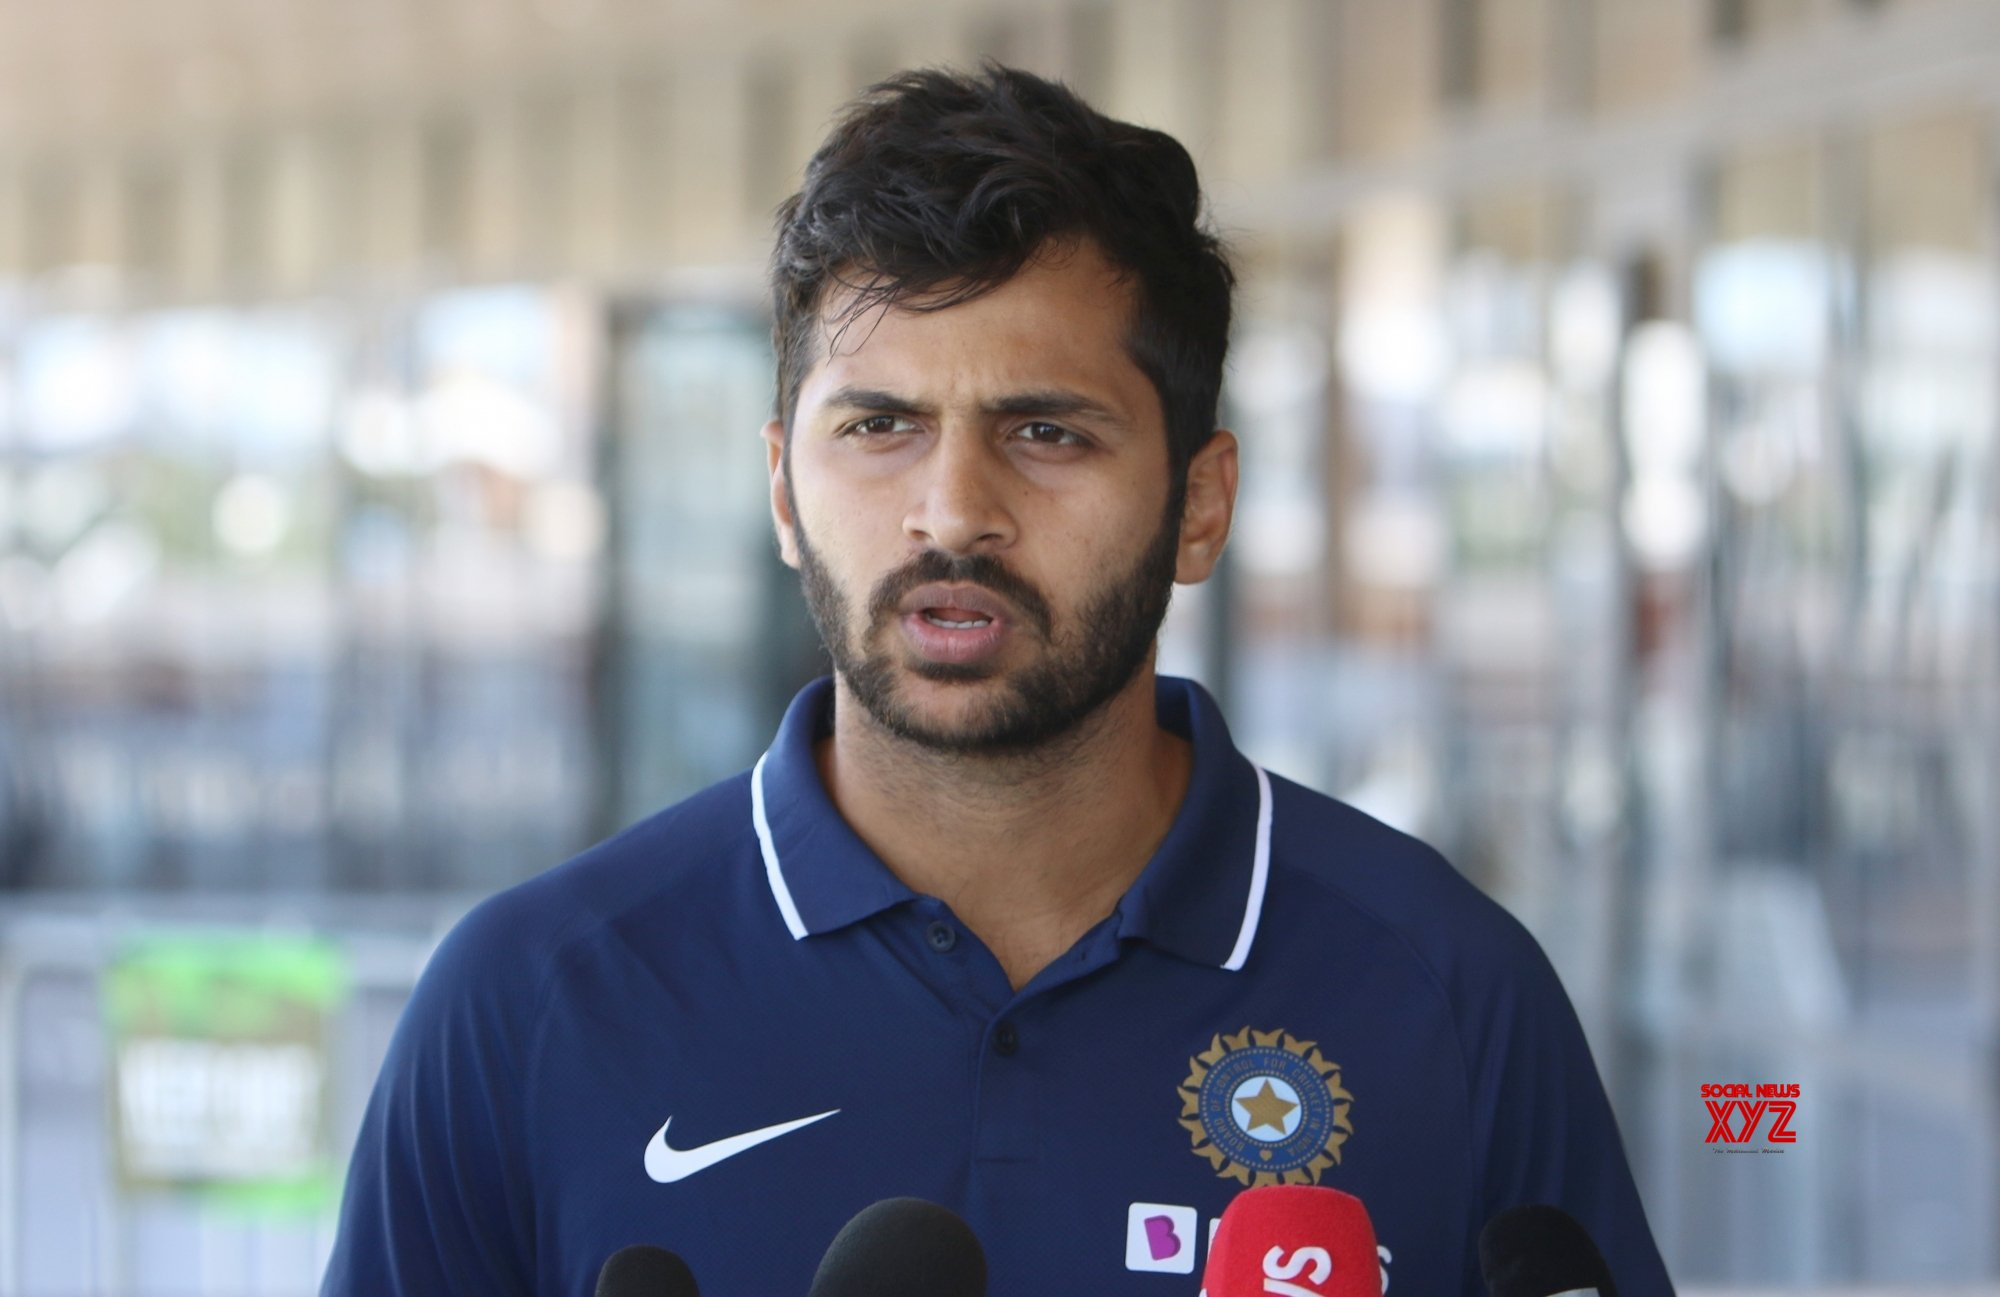 BCCI not impressed as Shardul Thakur trains outdoors in Mumbai